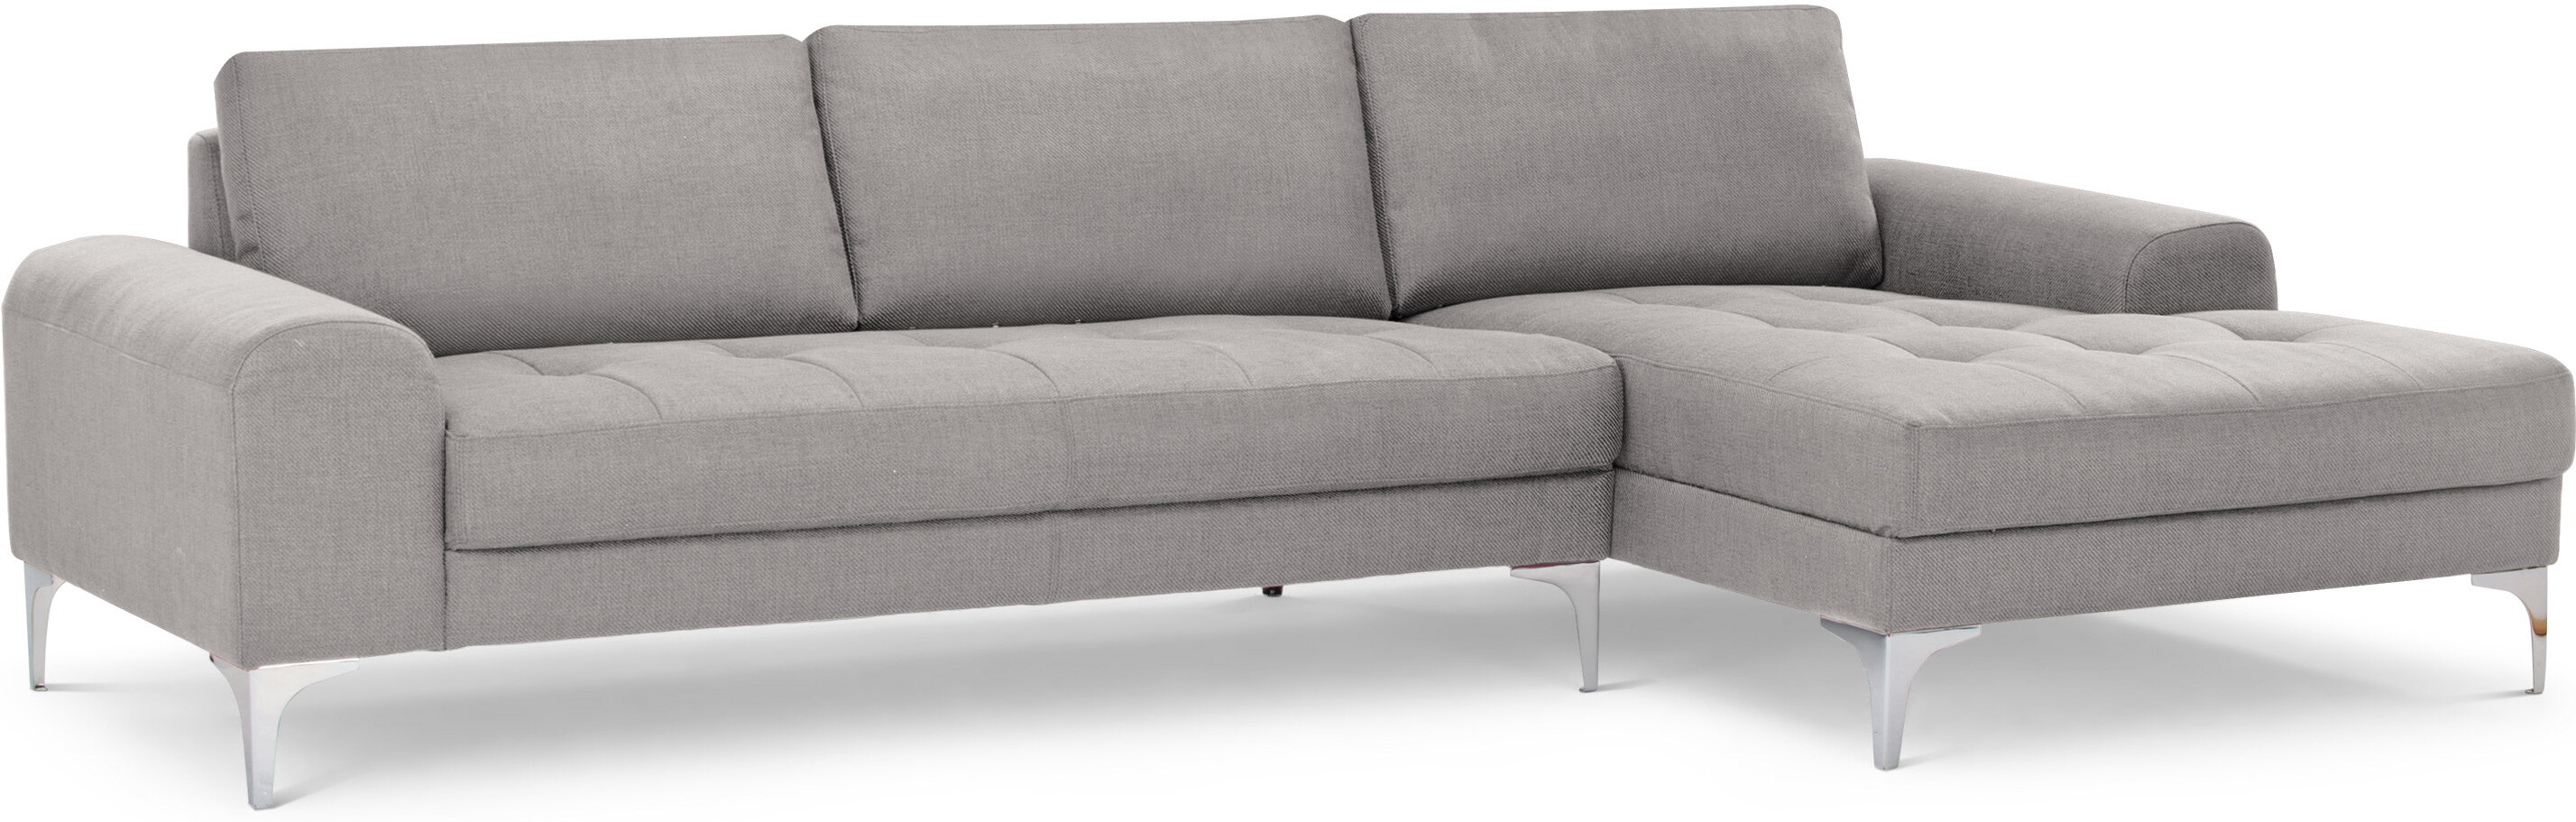 Buy cheap contemporary chaise longue compare sofas for Chaise longue cheap